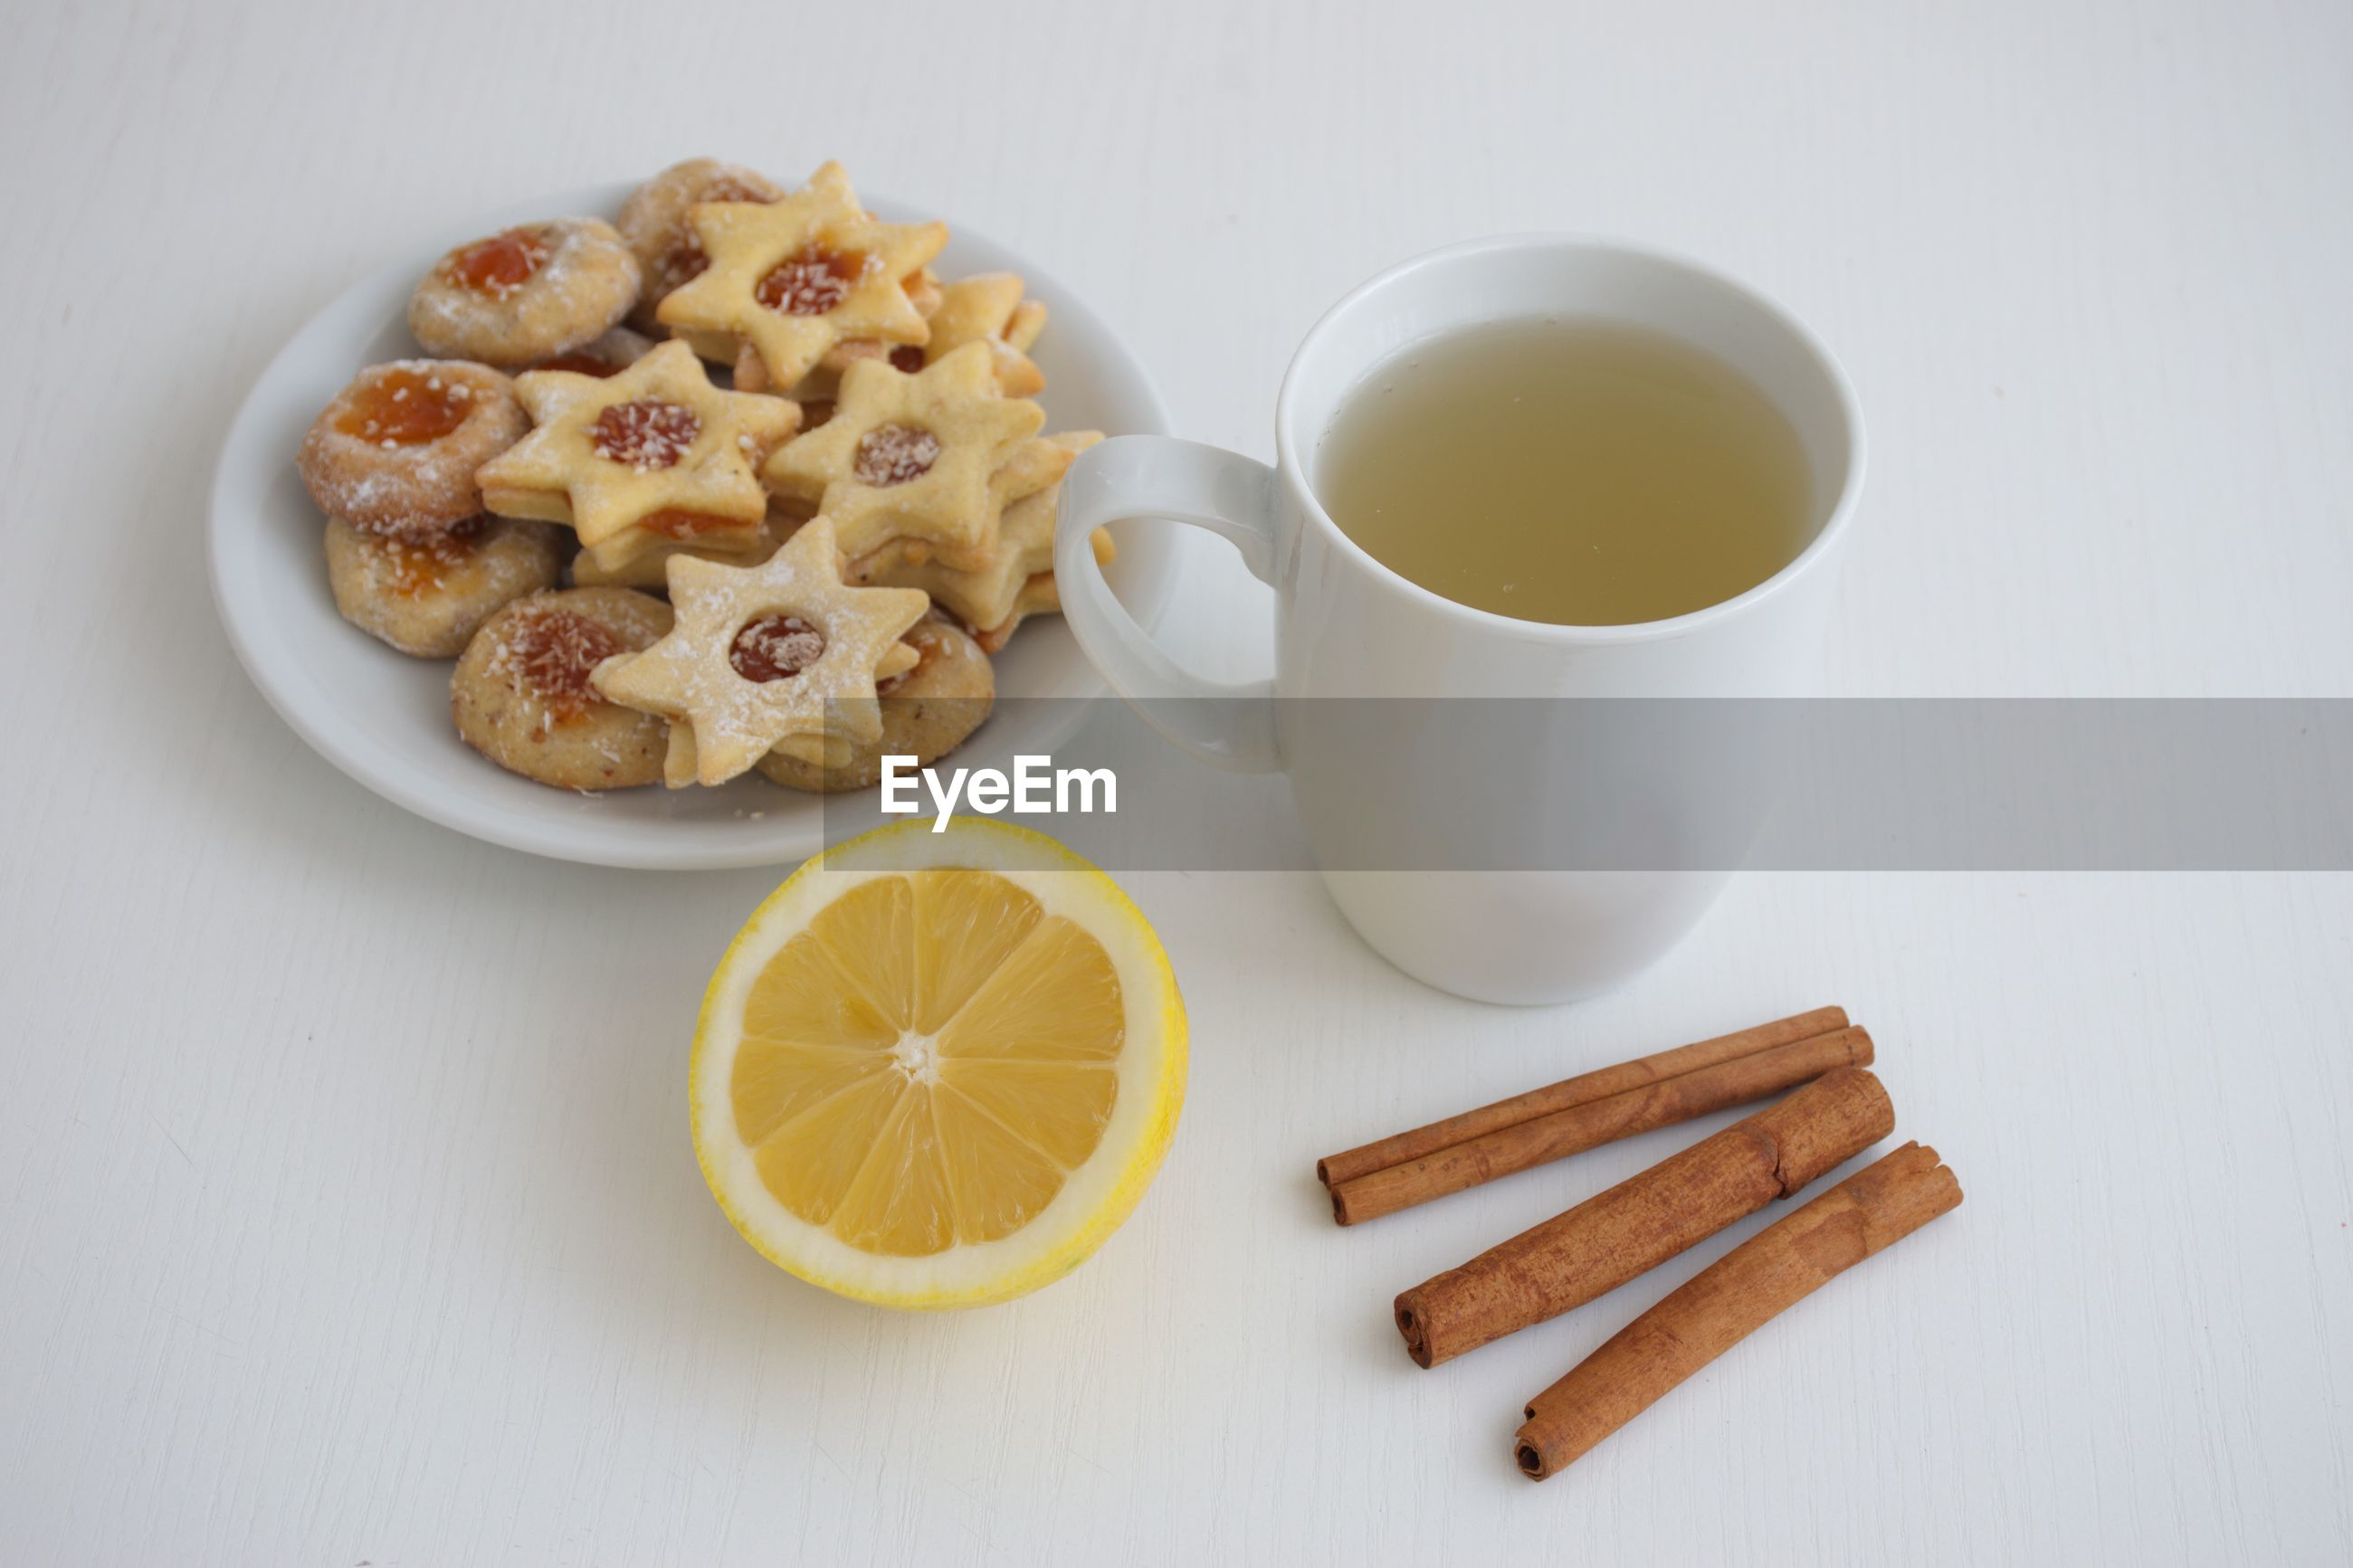 Cup of tea, lemon, cinnamon and plate with cookies against the white background